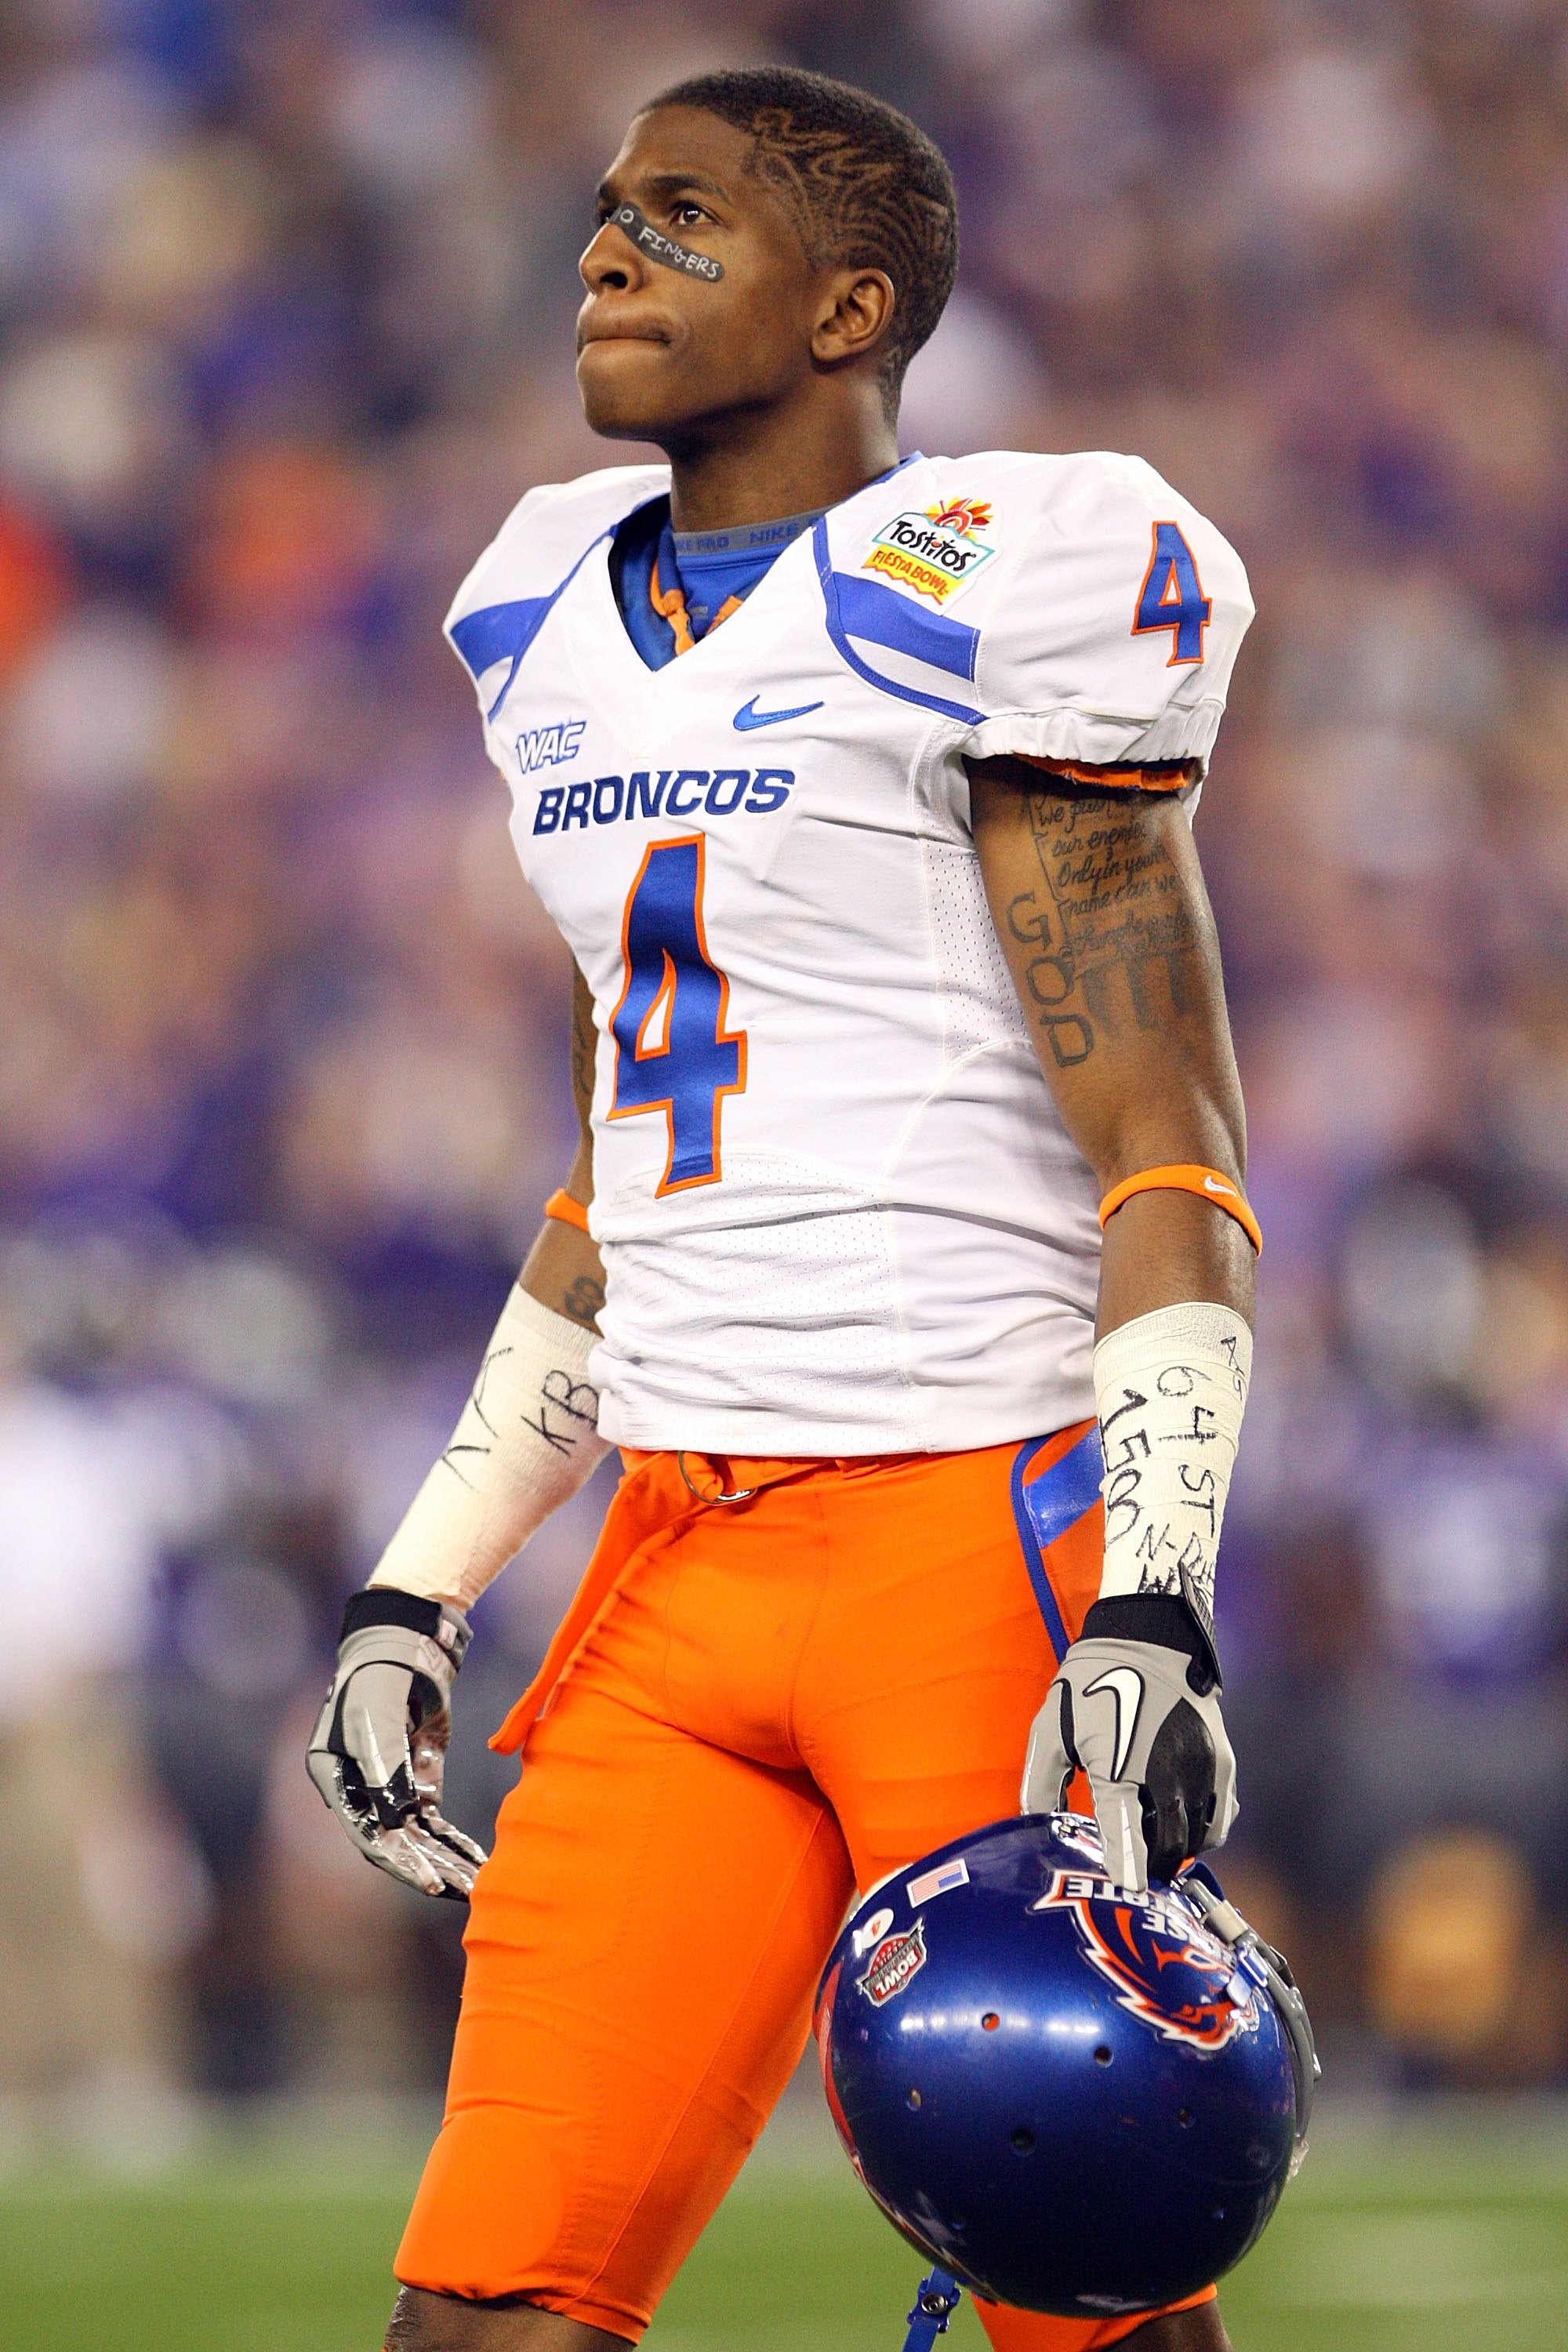 GLENDALE, AZ - JANUARY 04:  Titus Young #4 of the Boise State Broncos looks on against the TCU Horned Frogs during the Tostitos Fiesta Bowl at the Universtity of Phoenix Stadium on January 4, 2010 in Glendale, Arizona.  (Photo by Christian Petersen/Getty